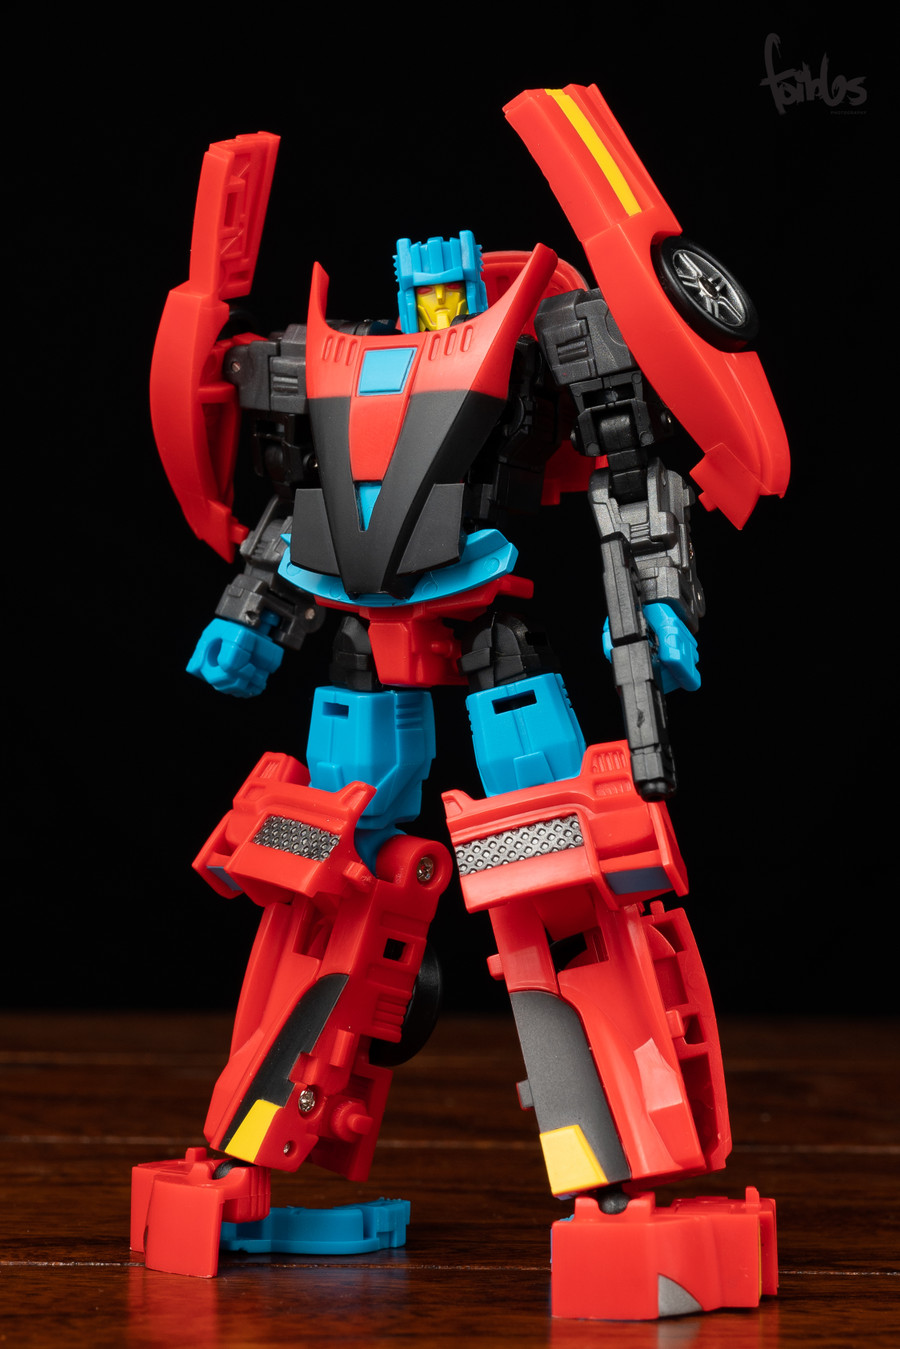 FansProject - Kausality KA-12 Lost Chance (A3U Exclusive)